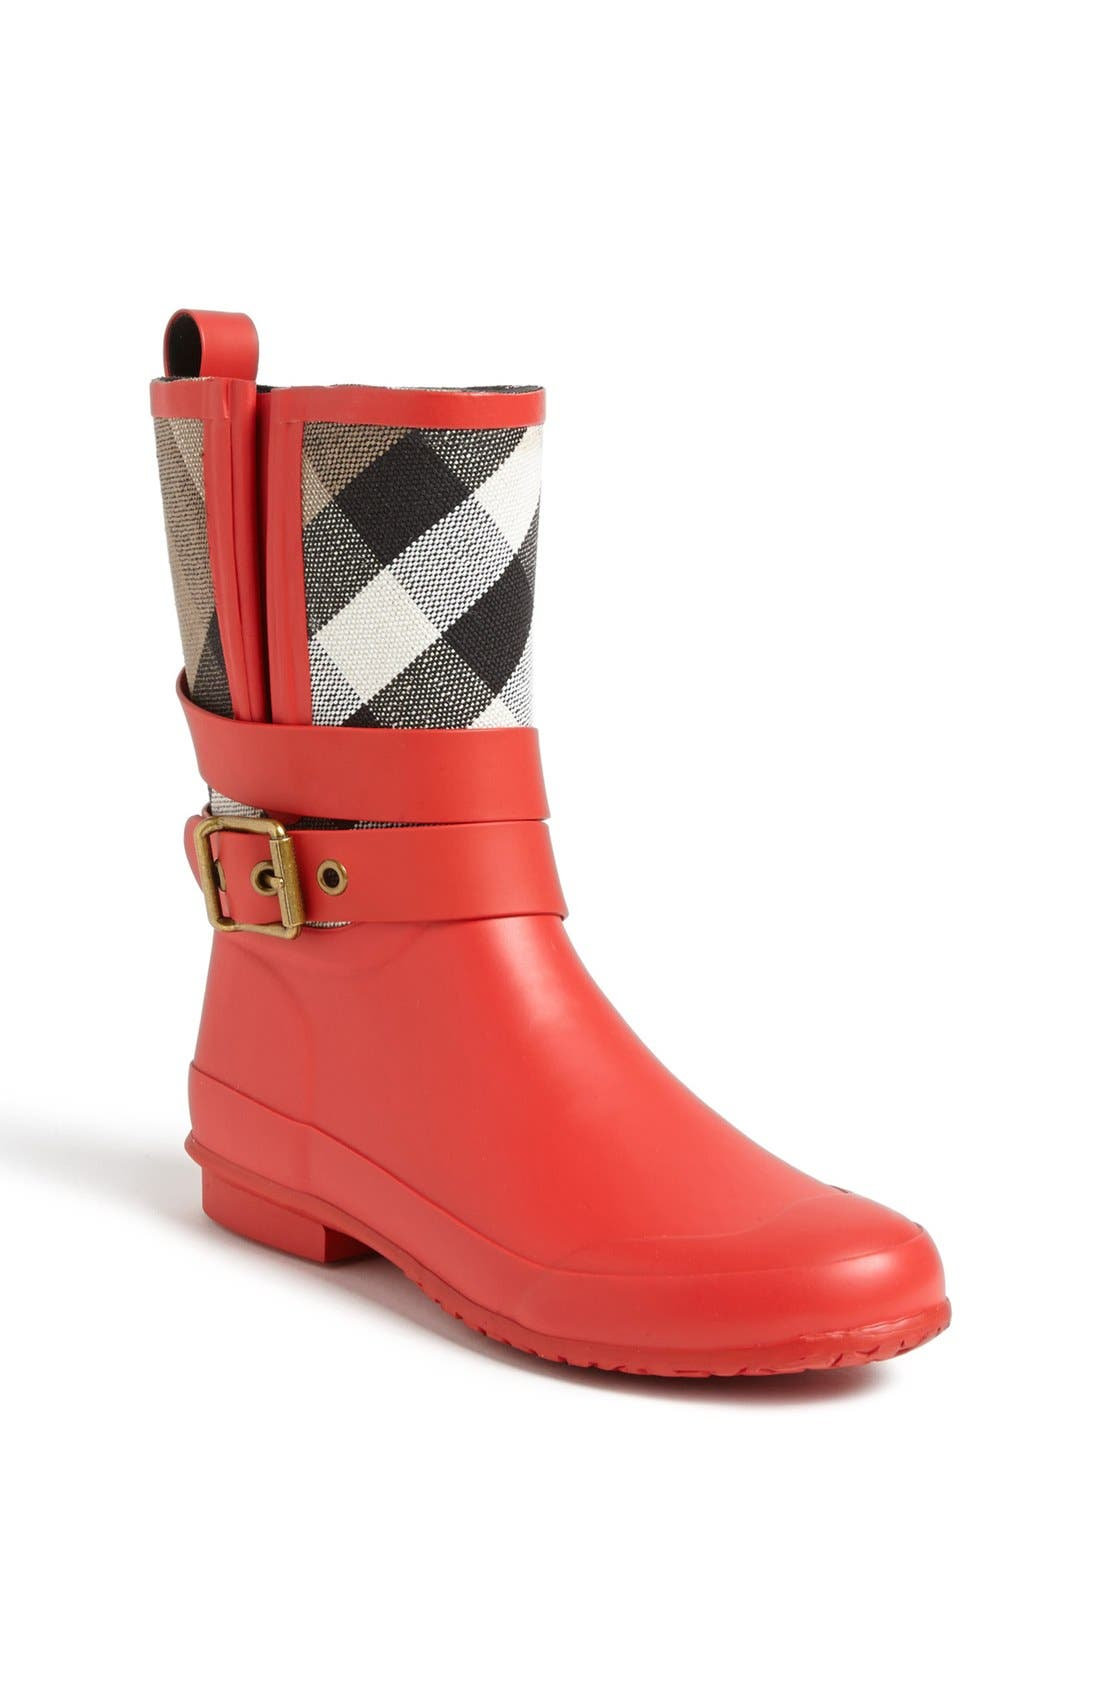 Main Image - Burberry 'Holloway' Rain Boot (Women)